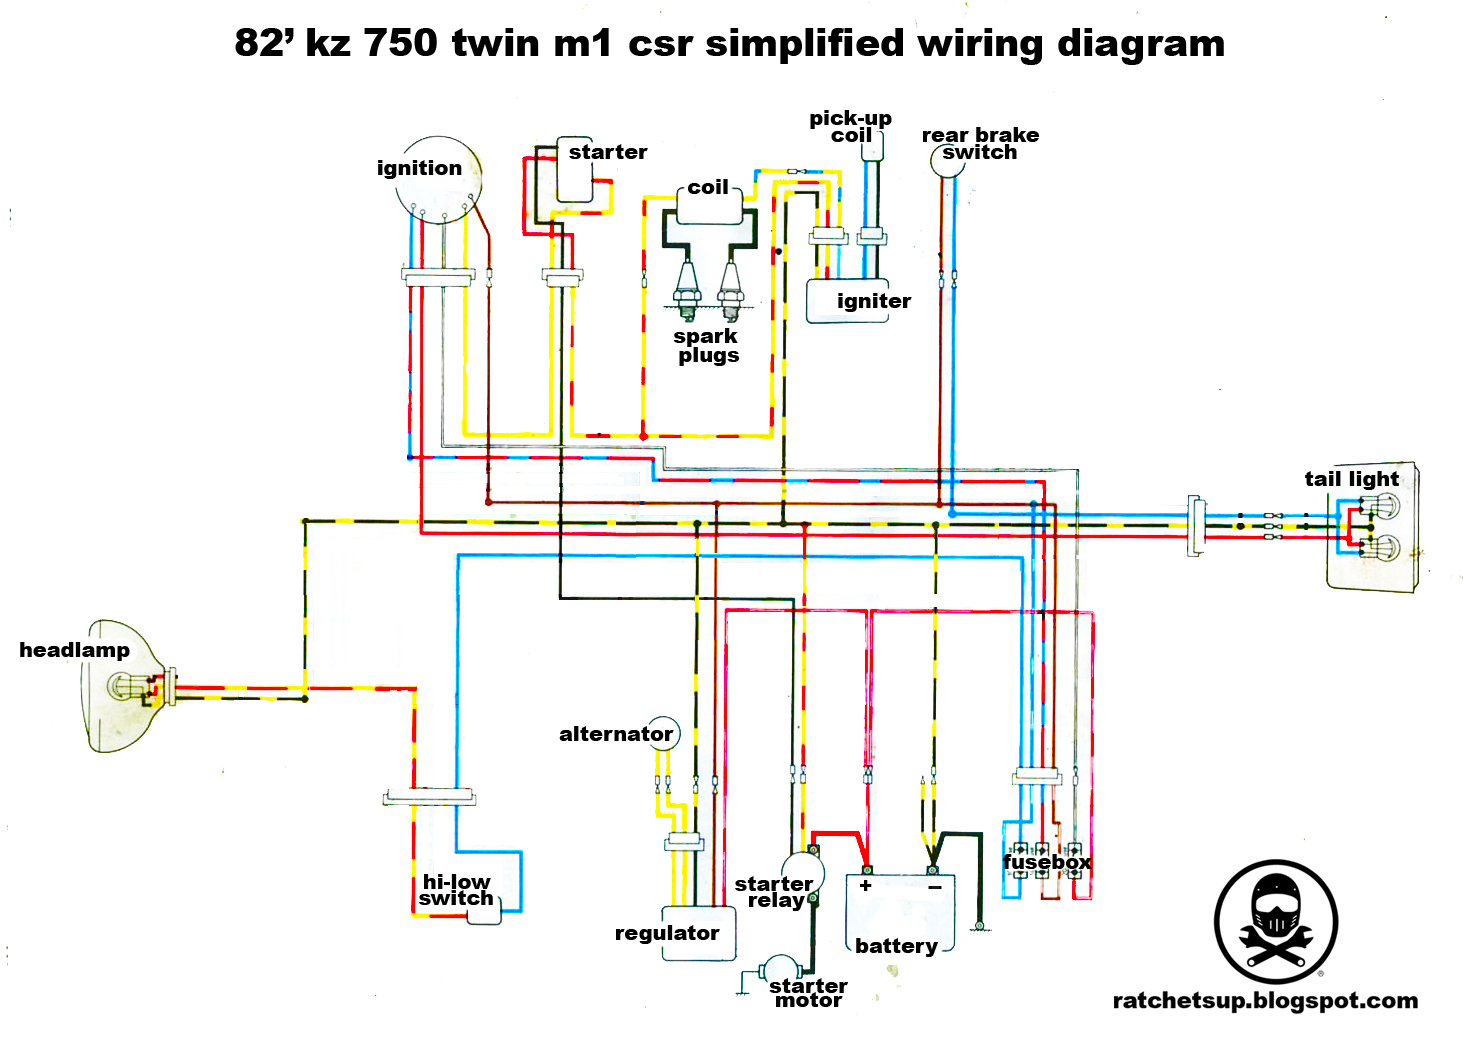 kz750+simple+diagram simplified minimal kz750 csr wiring diagram kzrider forum kz440 wiring diagram at creativeand.co